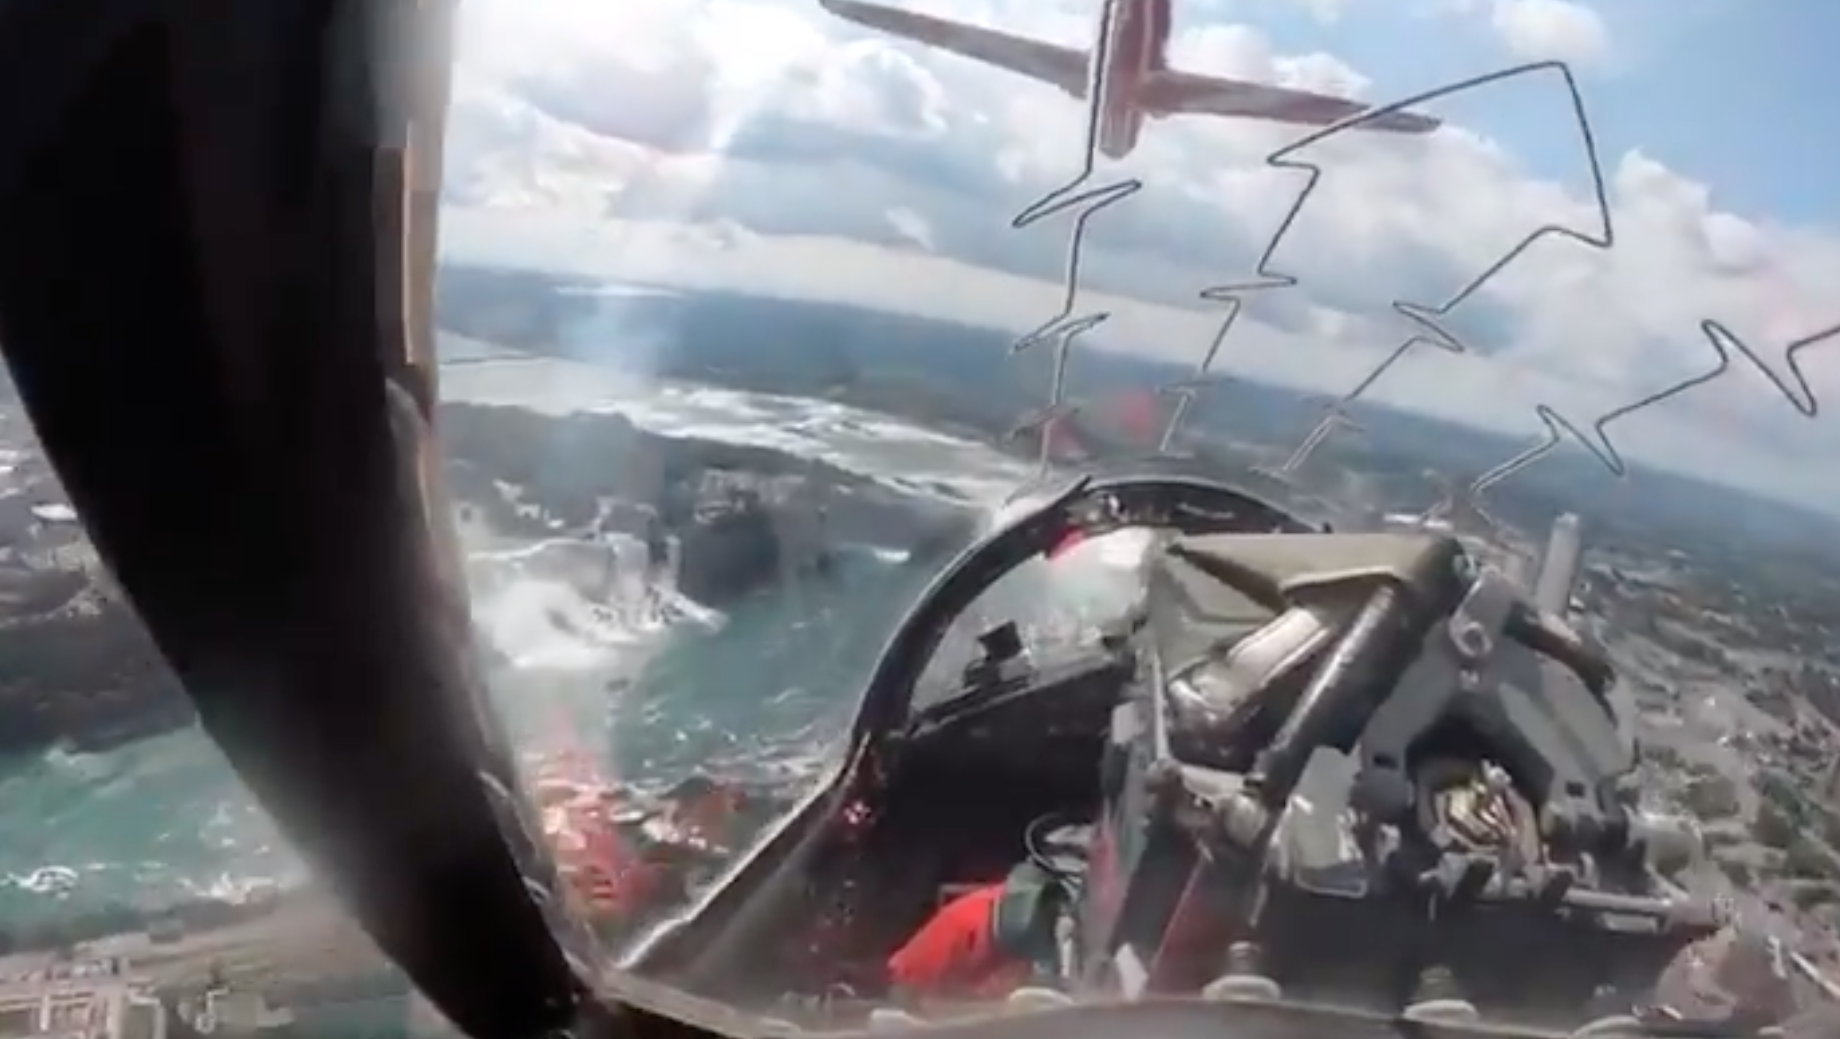 Breathtaking views over Niagara Falls - video by Circus 6, Cpl Paul Scottney, from the Red Arrows.